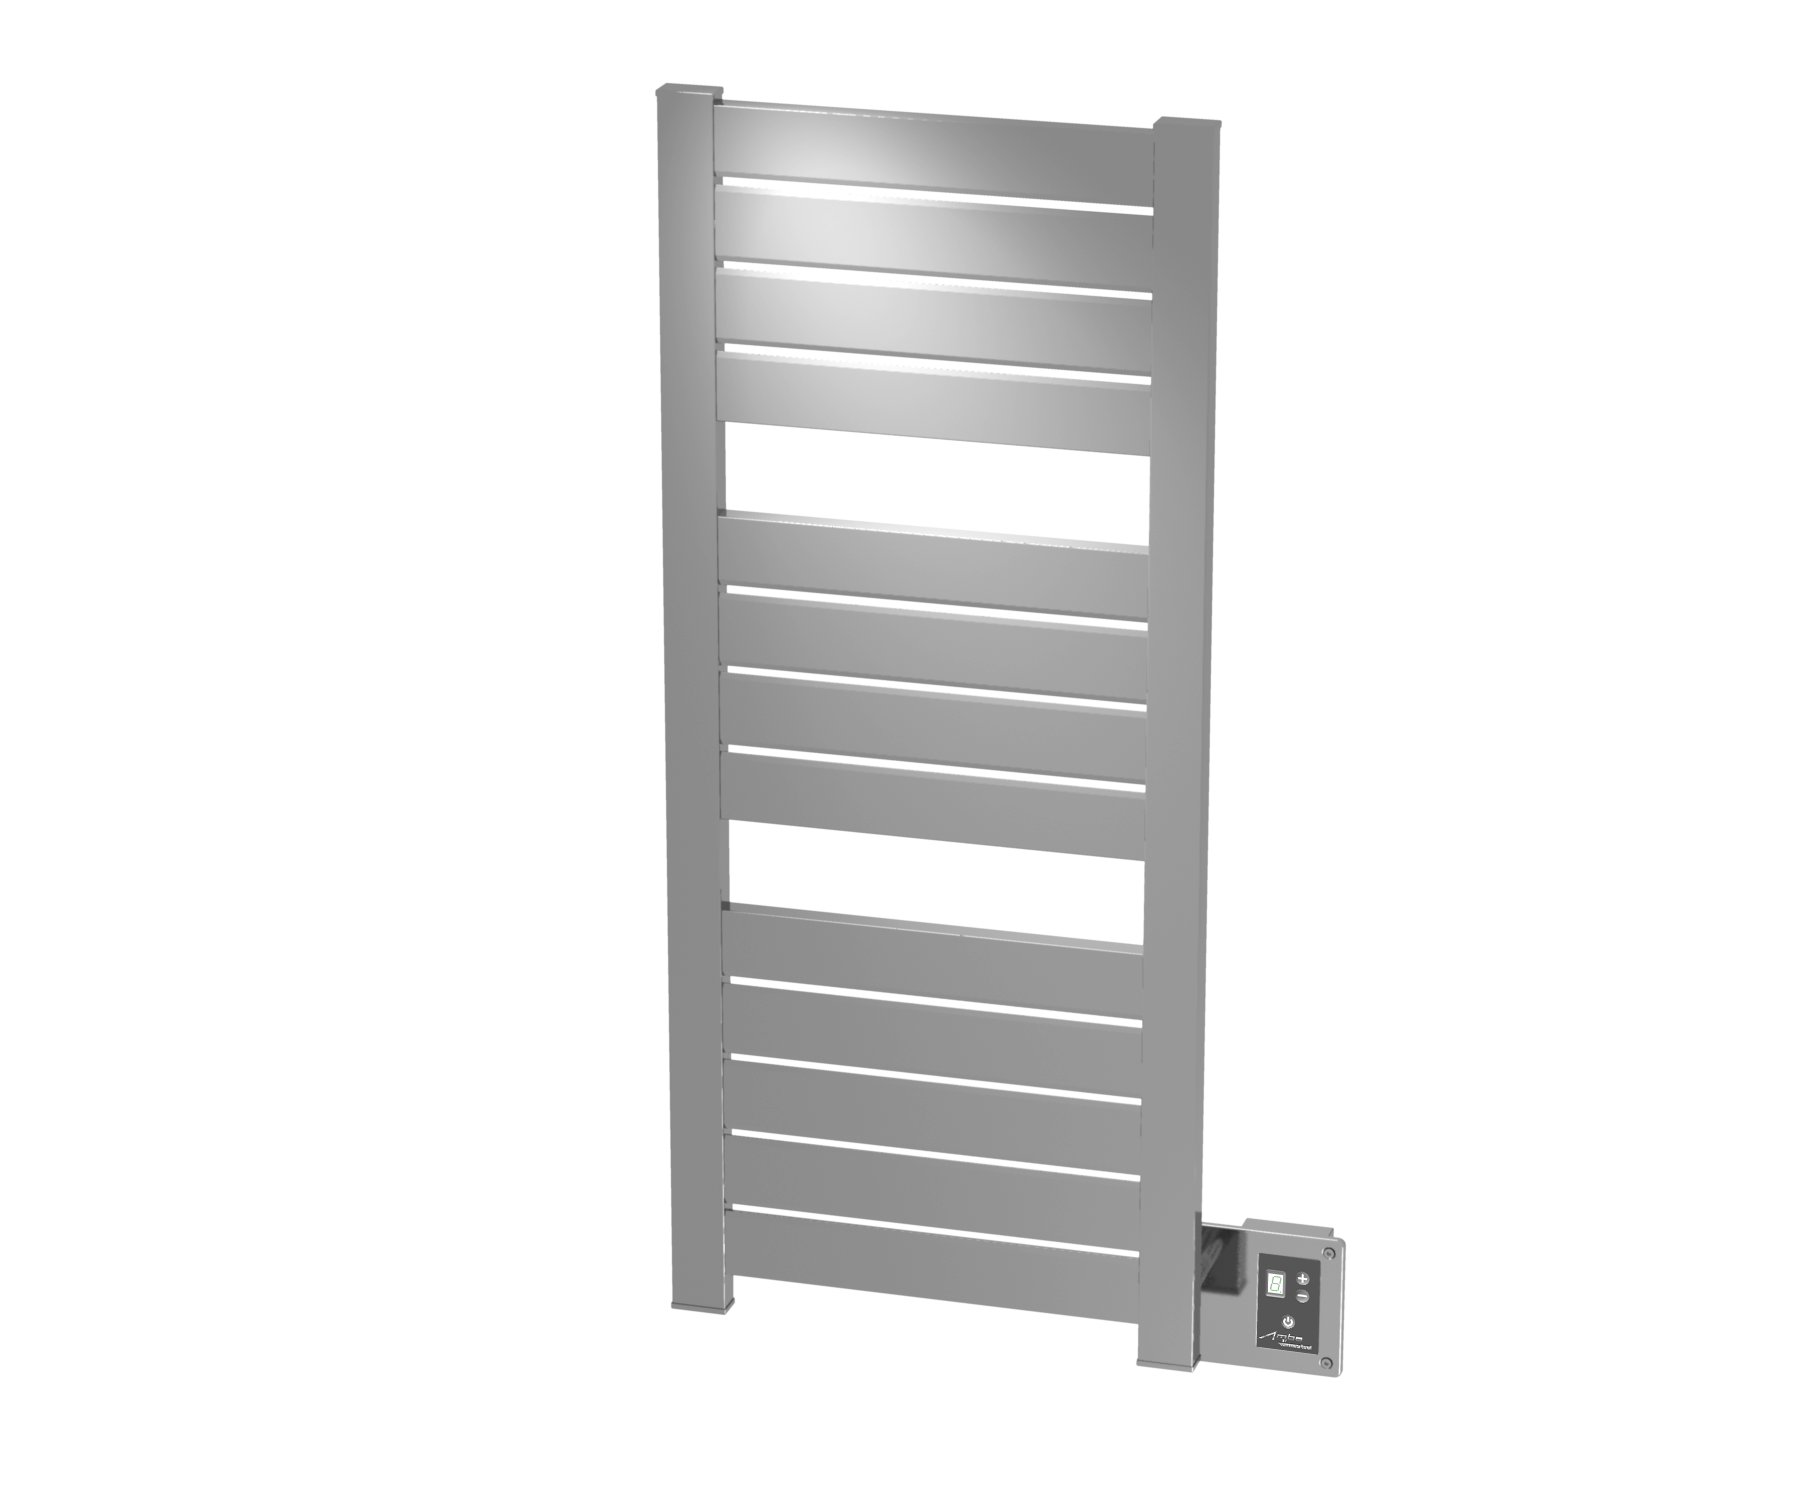 Towel Heaters | Amba Towel Warmers | Towel Dryers Bathroom